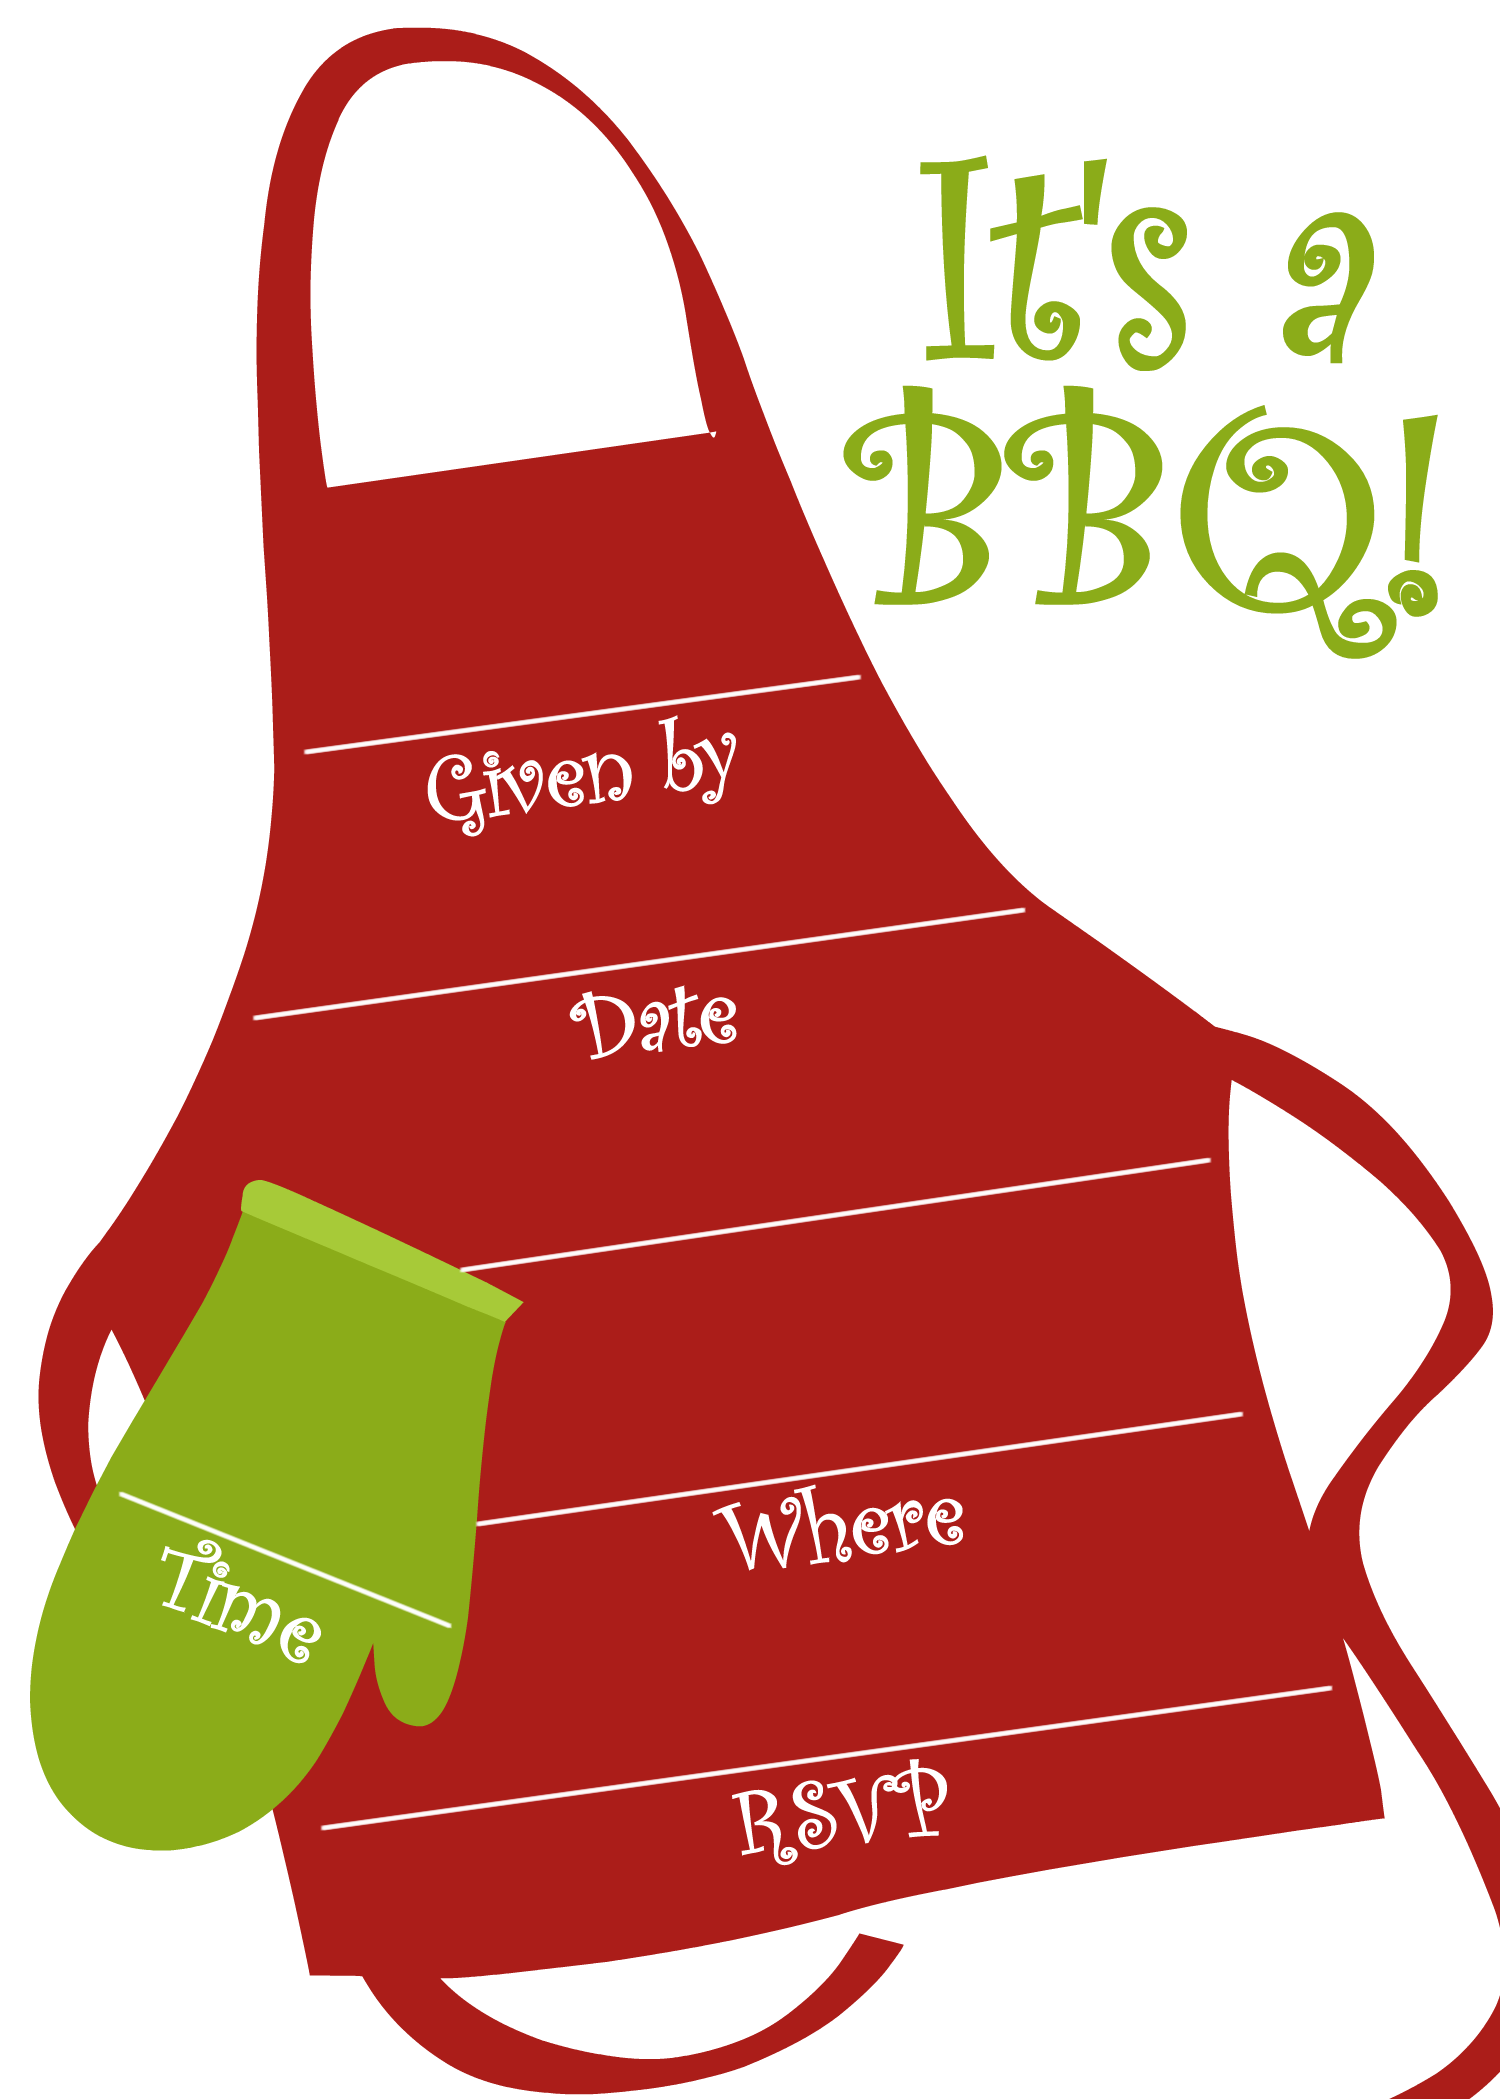 birthday bbq png transparent birthday bbq png images pluspng